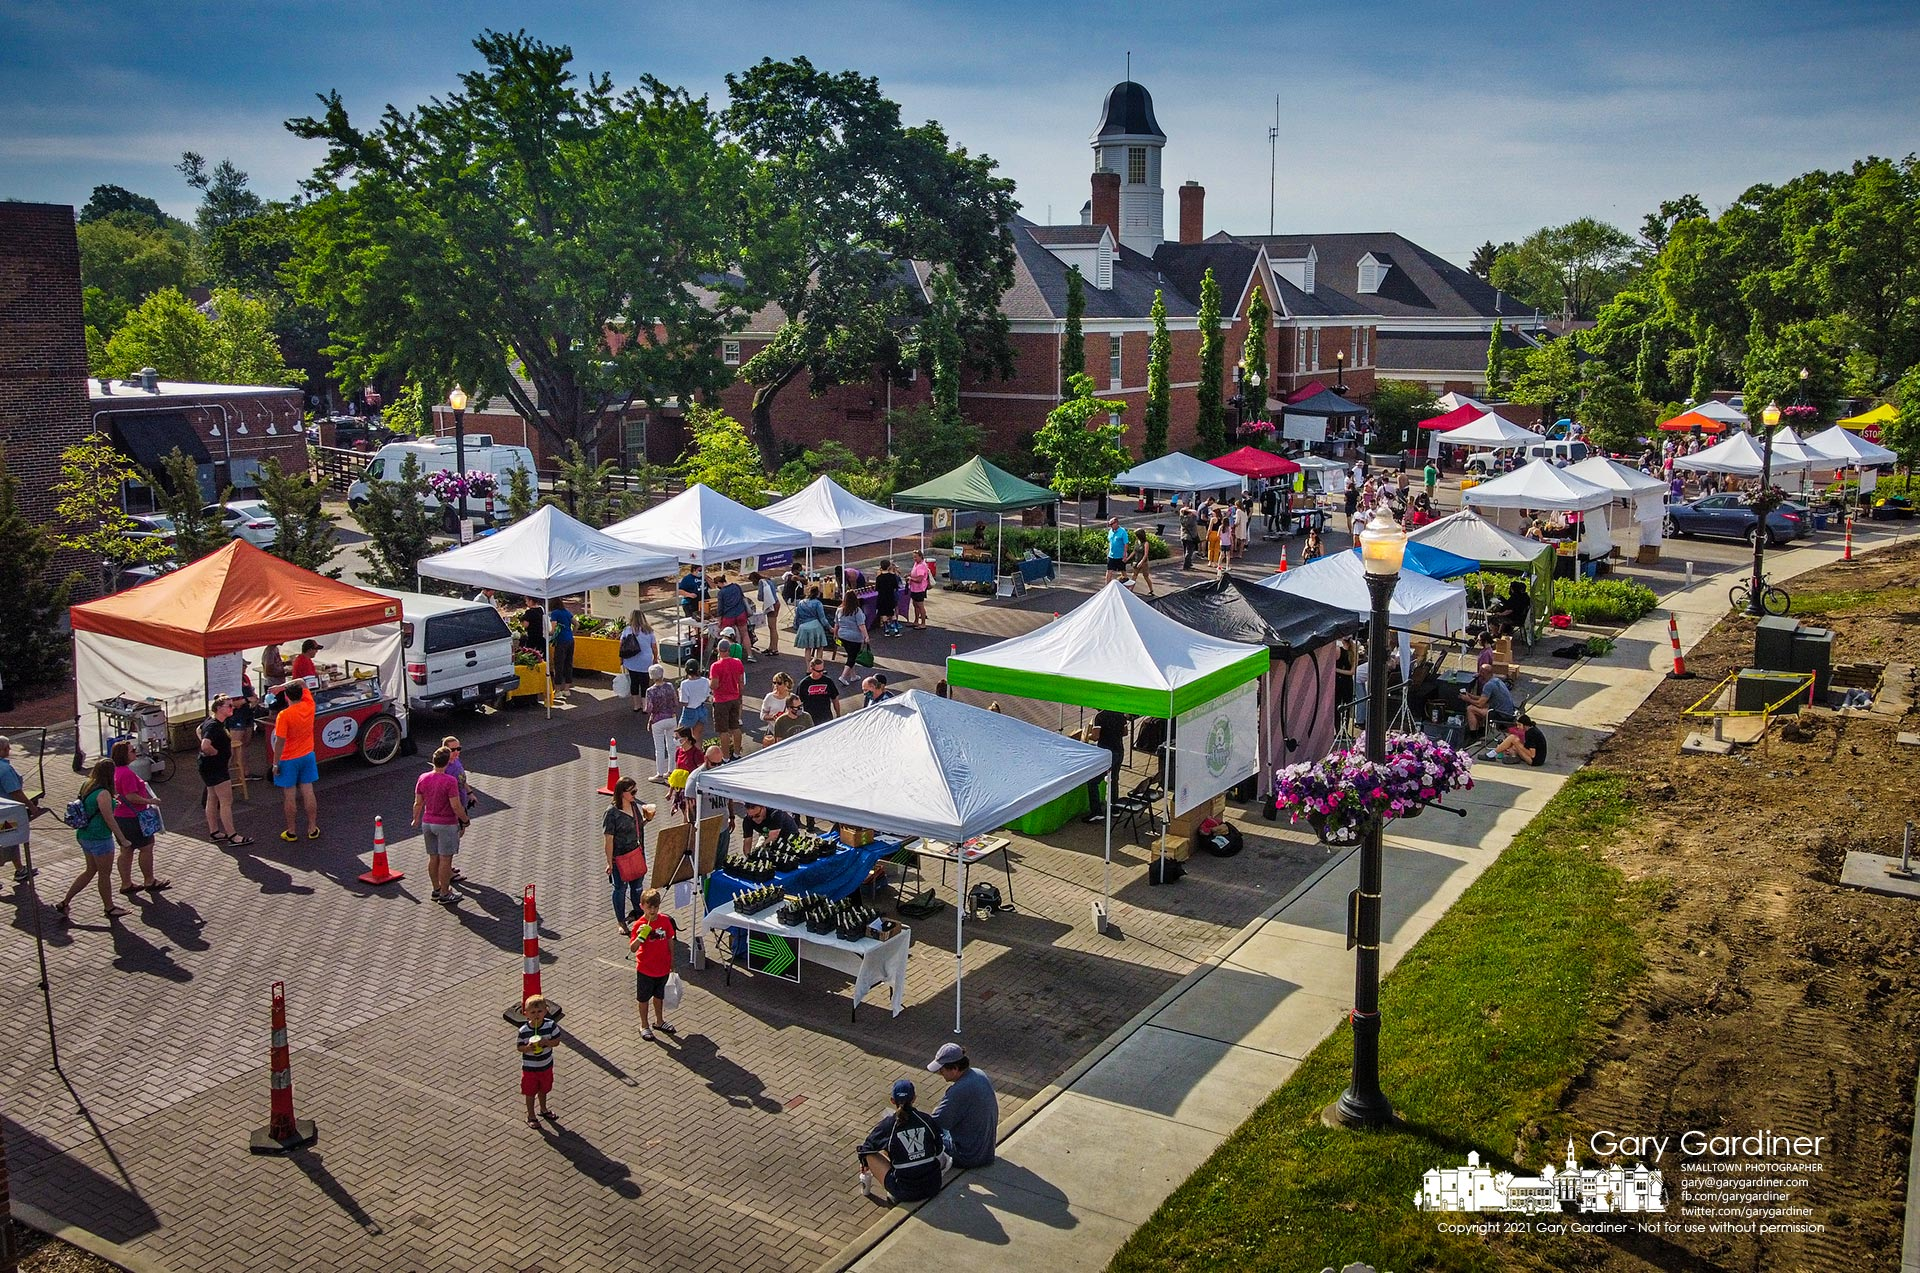 The first Saturday Farmers Market opened behind city hall to warm temperatures, a large number of vendors, and a crowd eager to see the market begin another year of summer treats. My Final Photo for May 22, 2021.